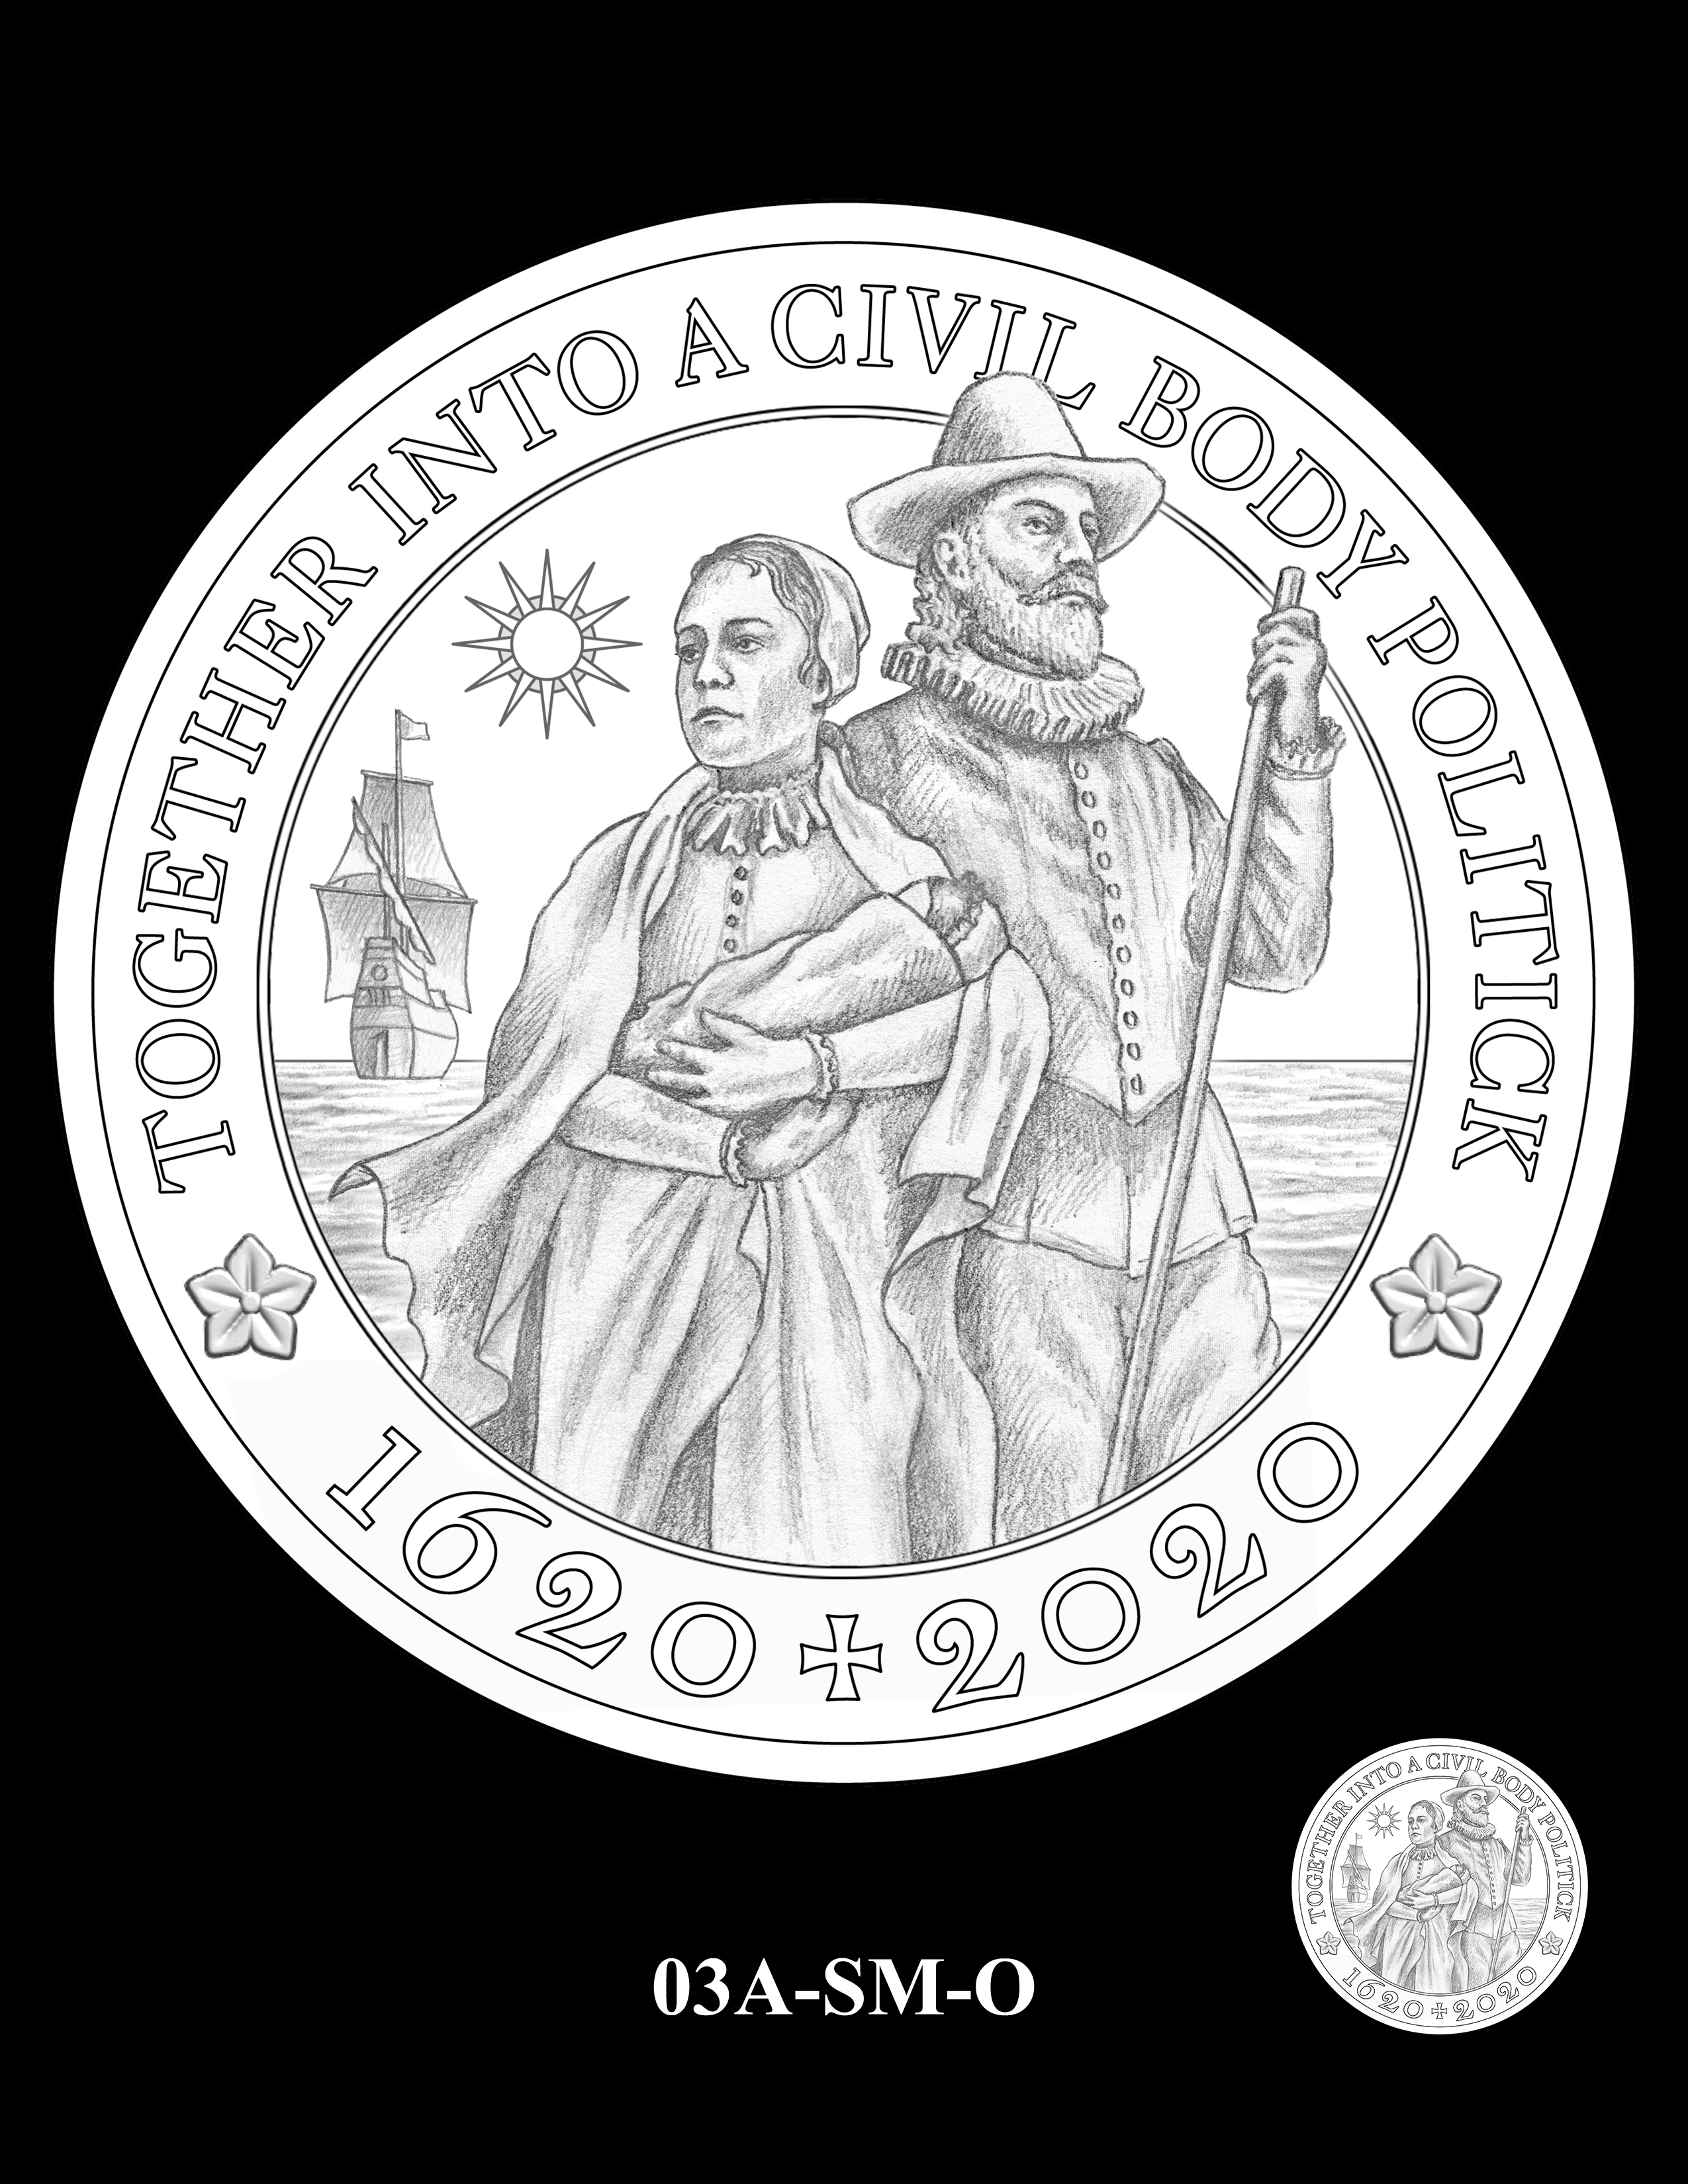 03A-SM-O - 2020 Mayflower 400th Anniversary 24K Gold Coin & Silver Medal Program